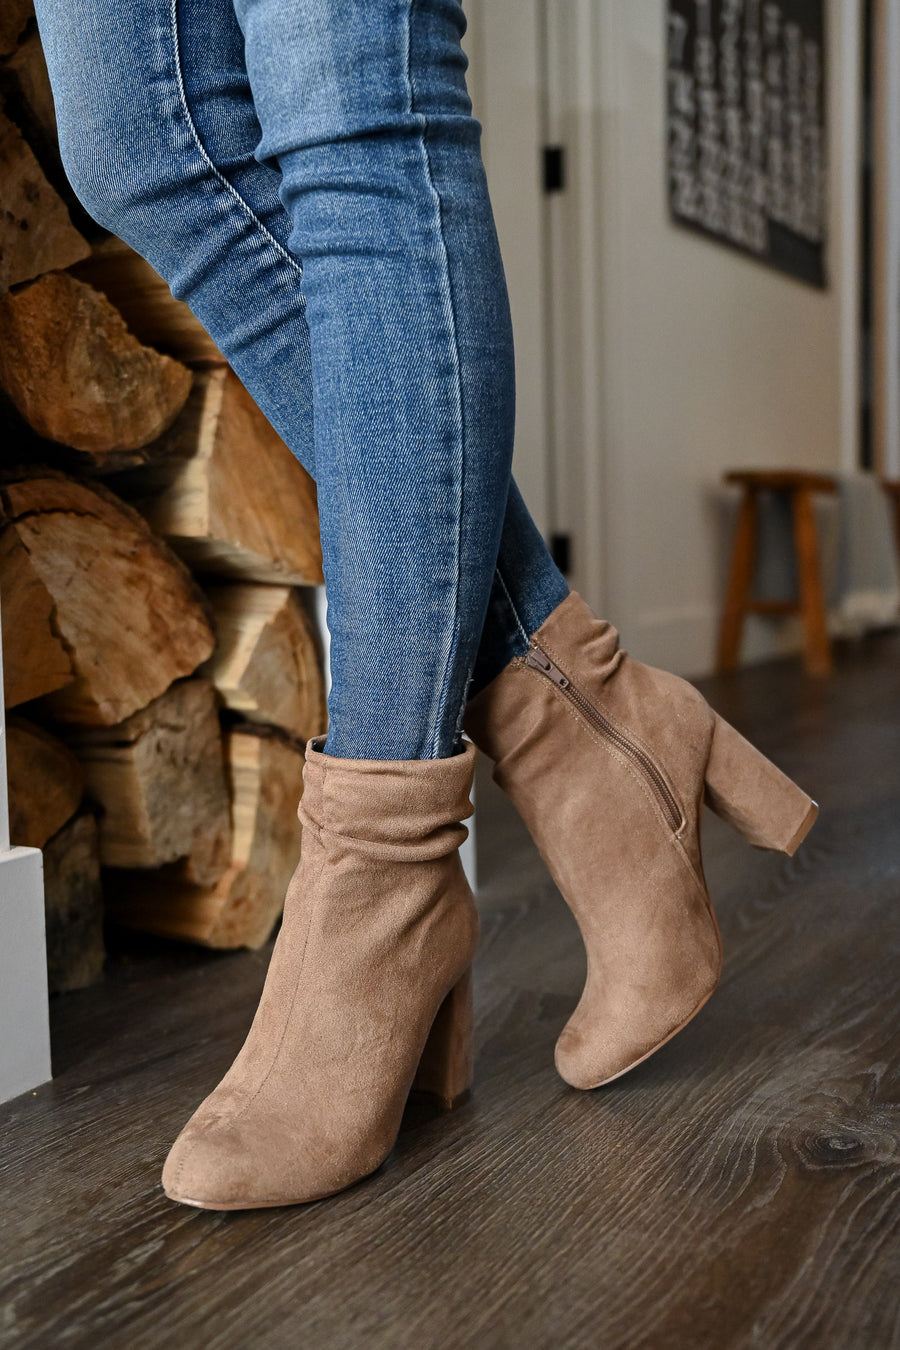 Annie Slouchy Ankle Booties - Taupe womens trendy began suede taupe slouchy ankle booties closet candy side